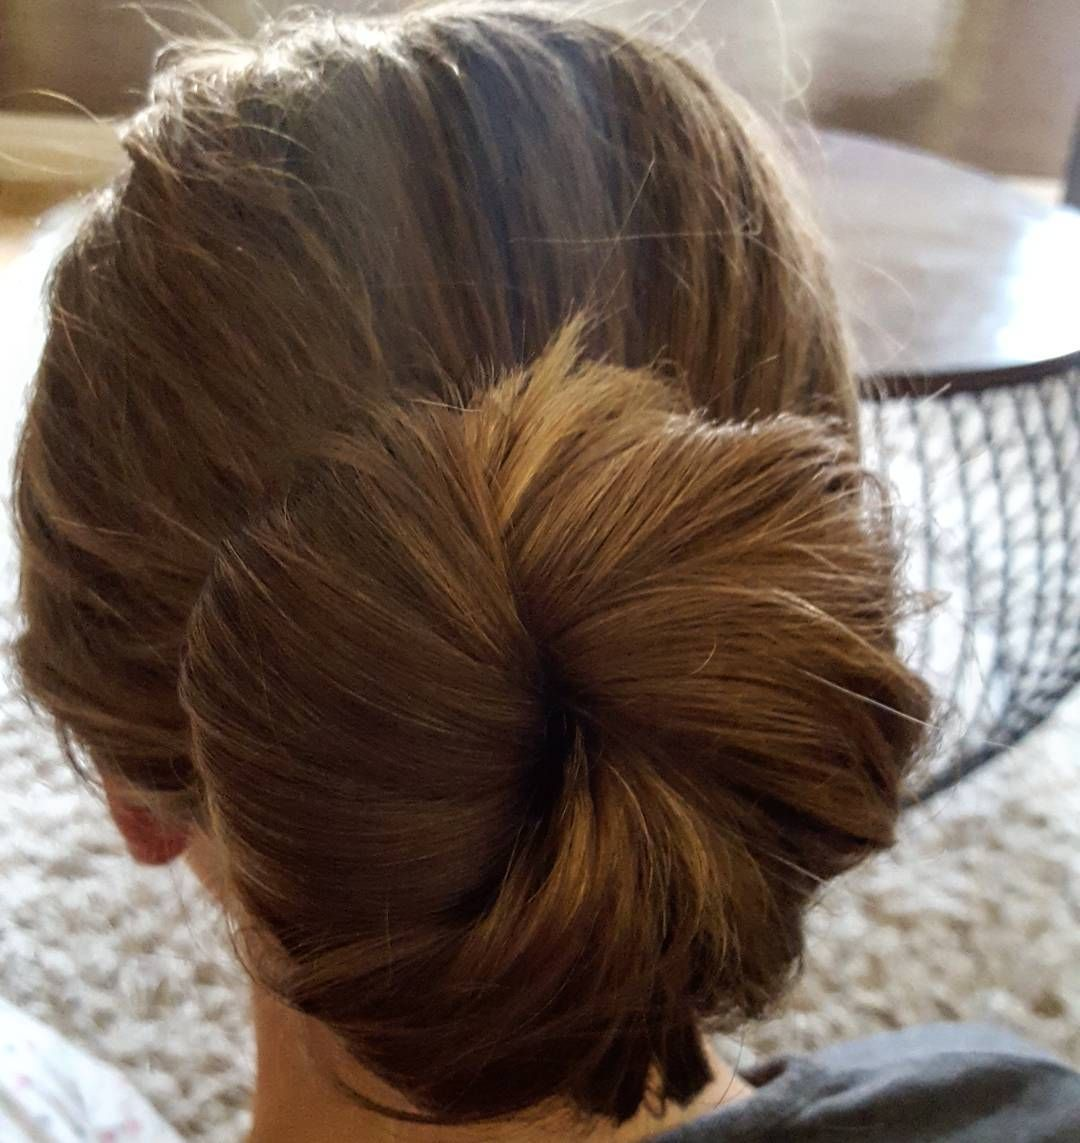 A Day For A Bun Simple And Stylish Bun Hairup Pinnedup Hair Styling Hairstyles Bridal Weddinghai In 2020 Mobile Hair Stylist Up Hairstyles Thick Hair Styles